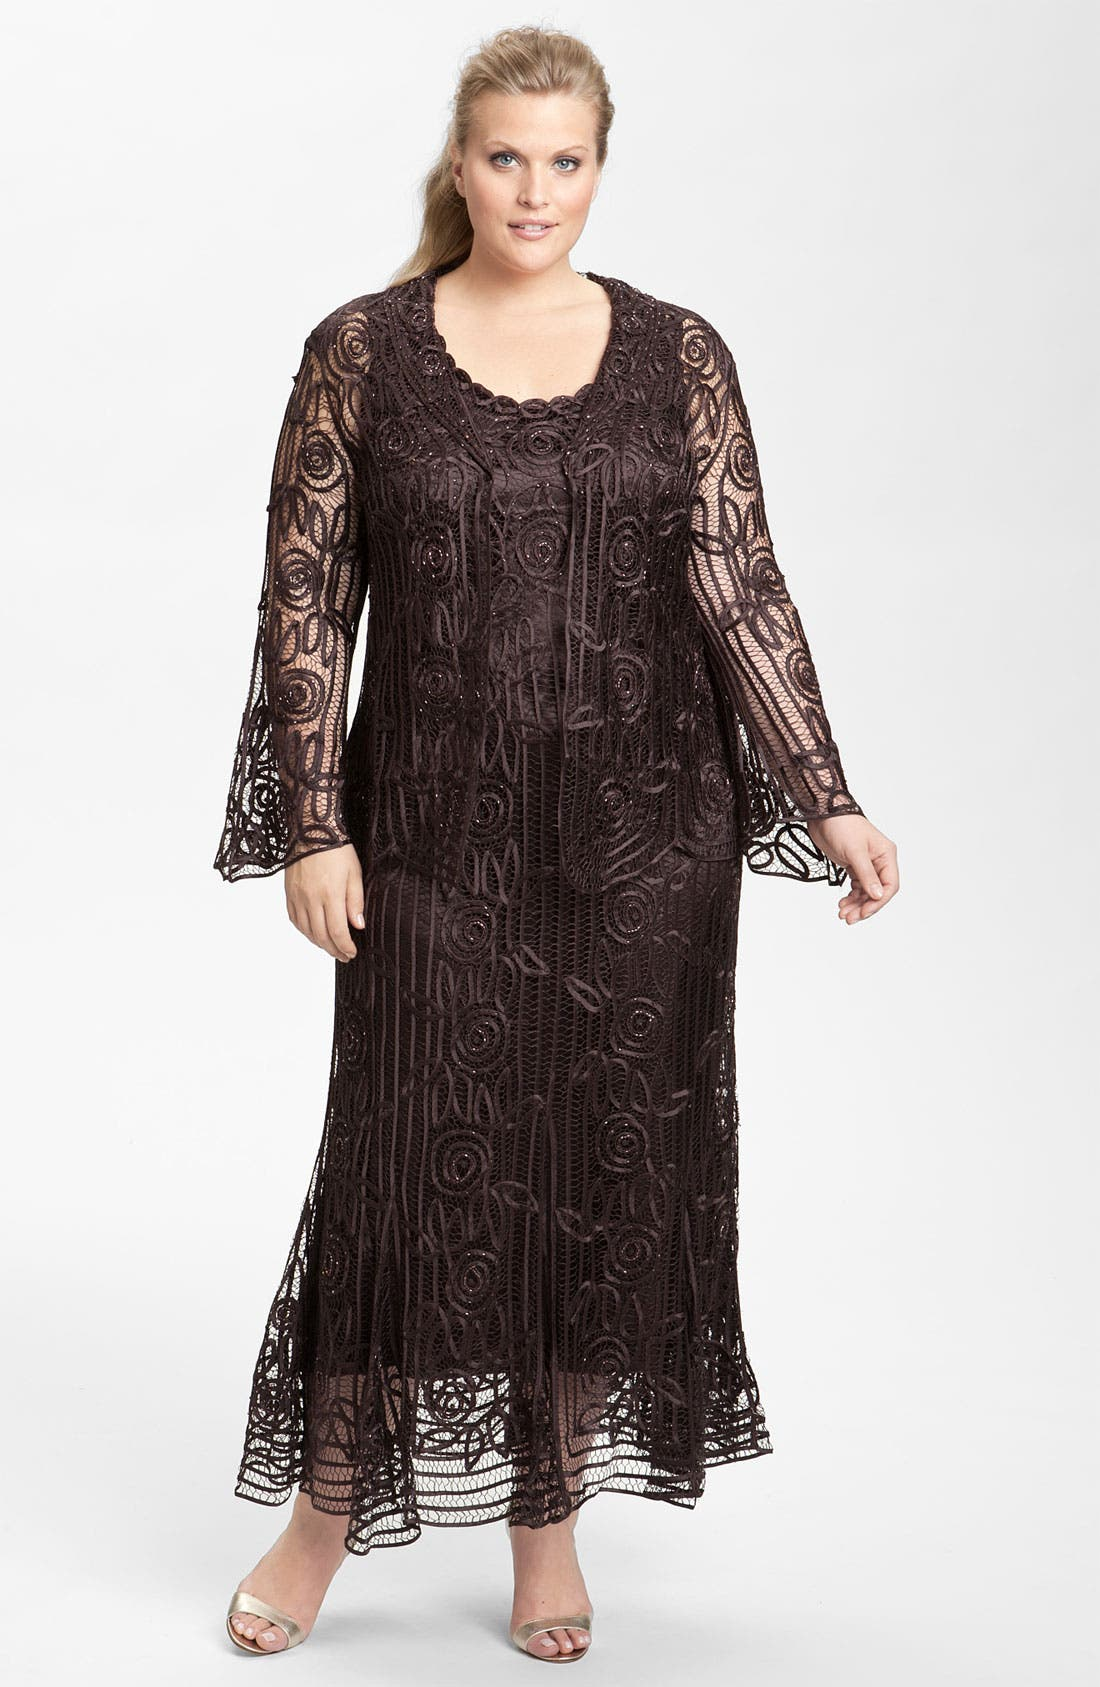 Main Image - Soulmates Ribbon Silk Dress & Jacket (Plus Size)